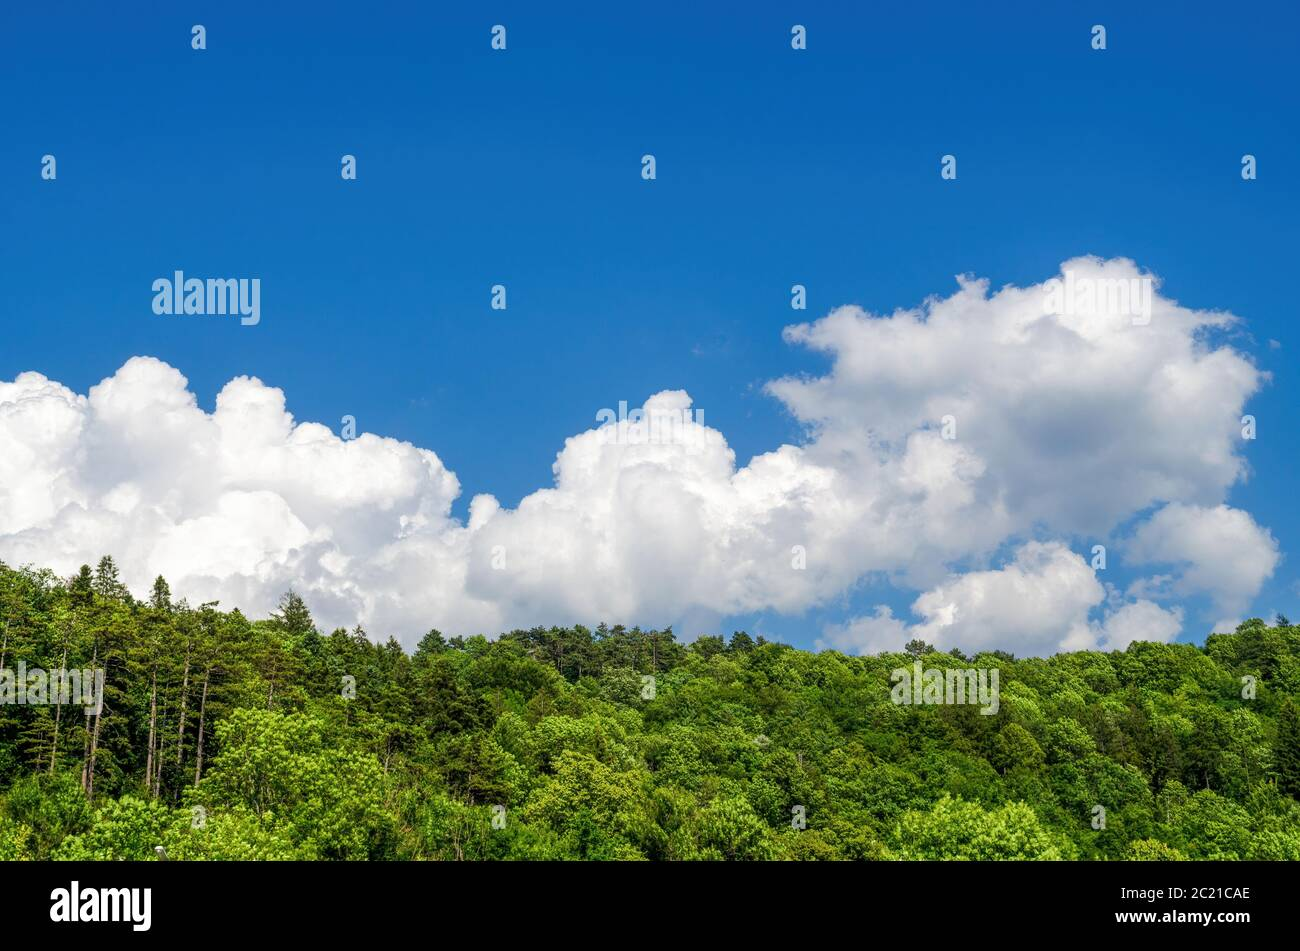 Low angle of forest with green trees growing against bright blue sky with white clouds on sunny day in nature Stock Photo